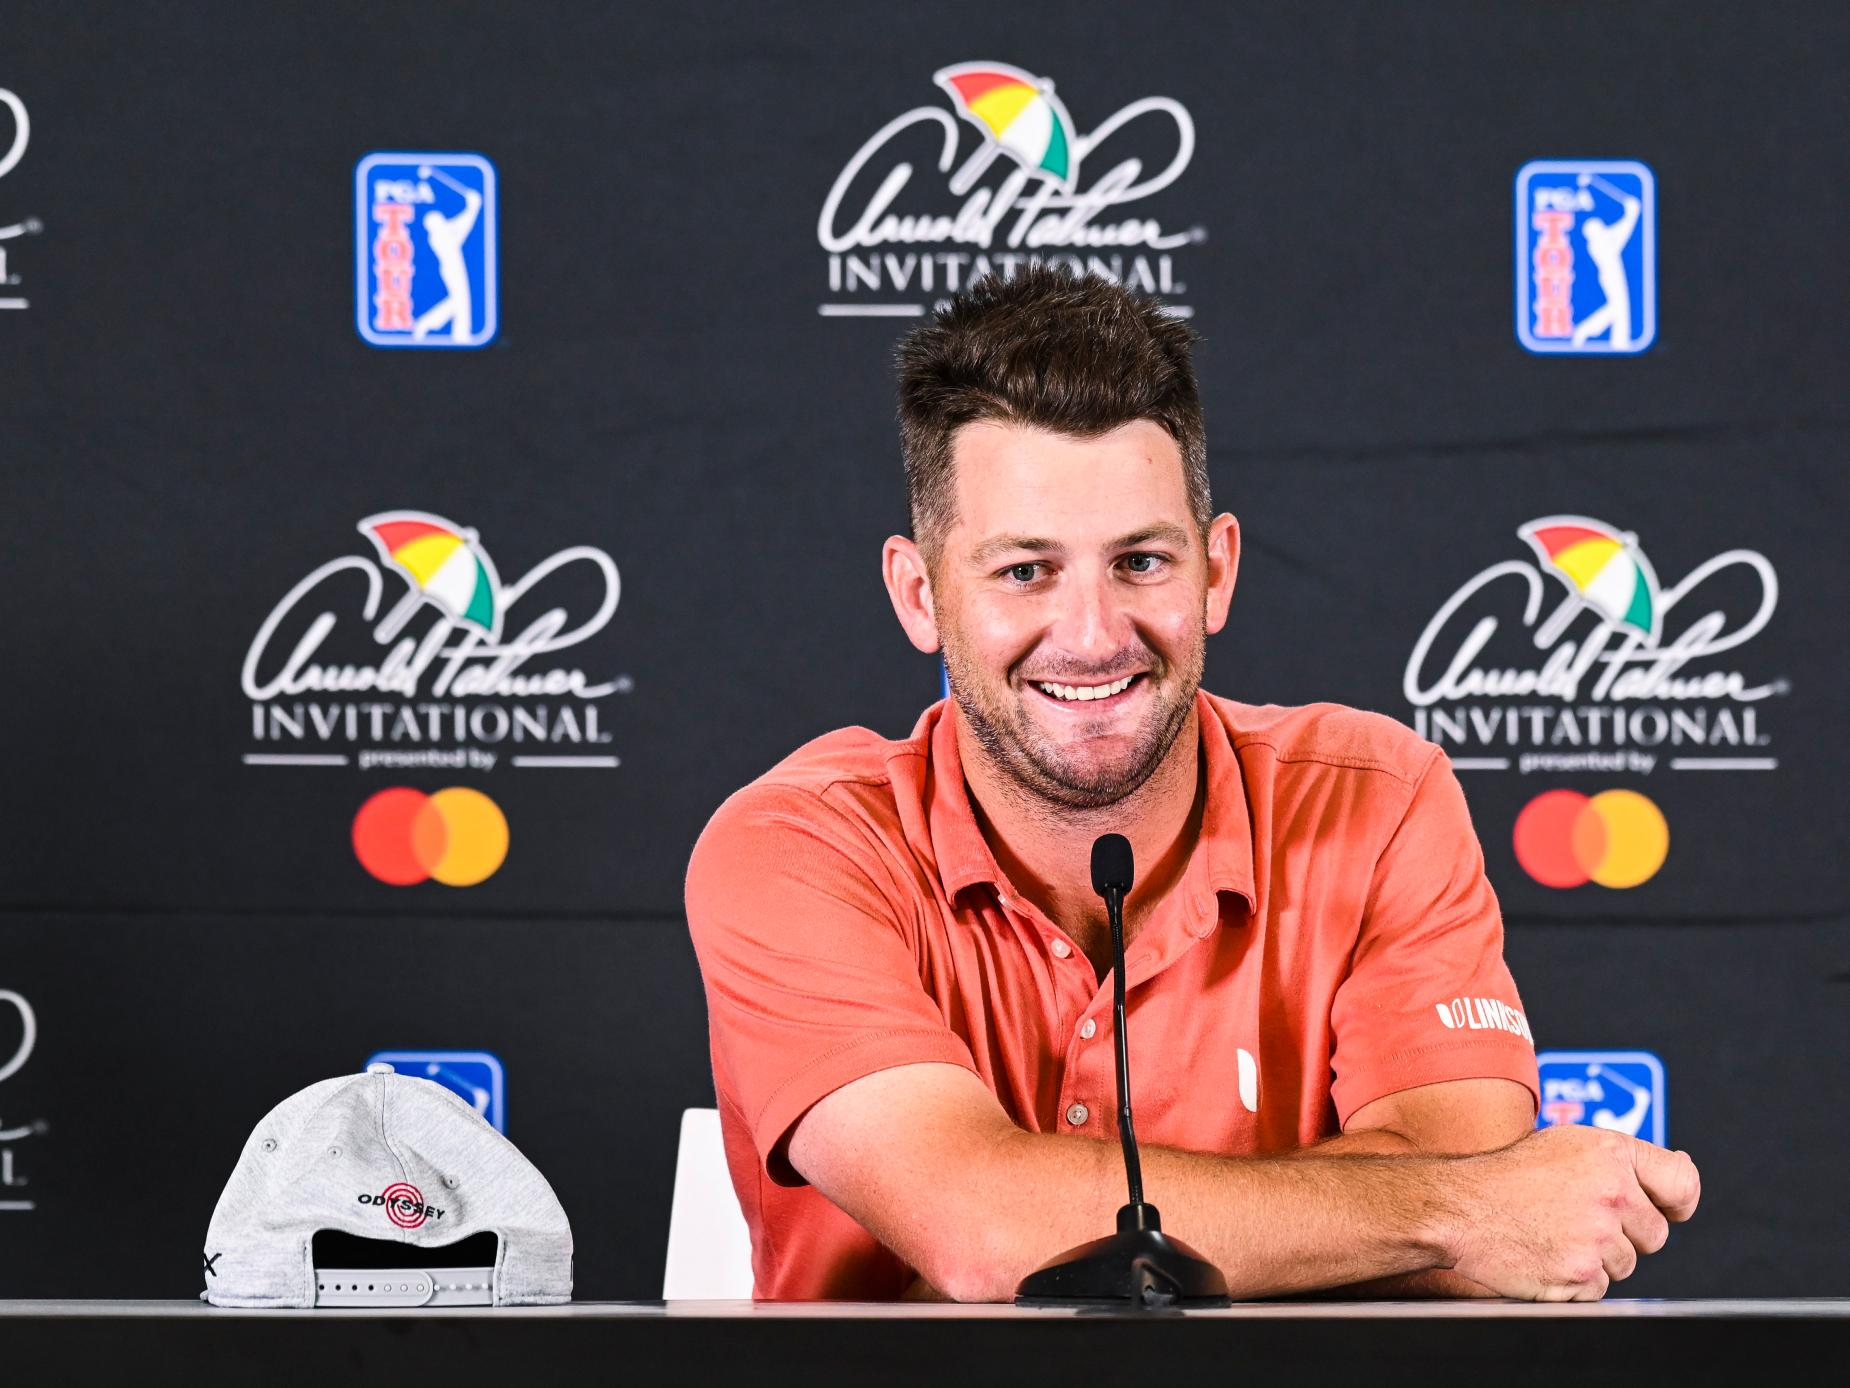 Arnold Palmer Invitational presented by MasterCard - Round 1